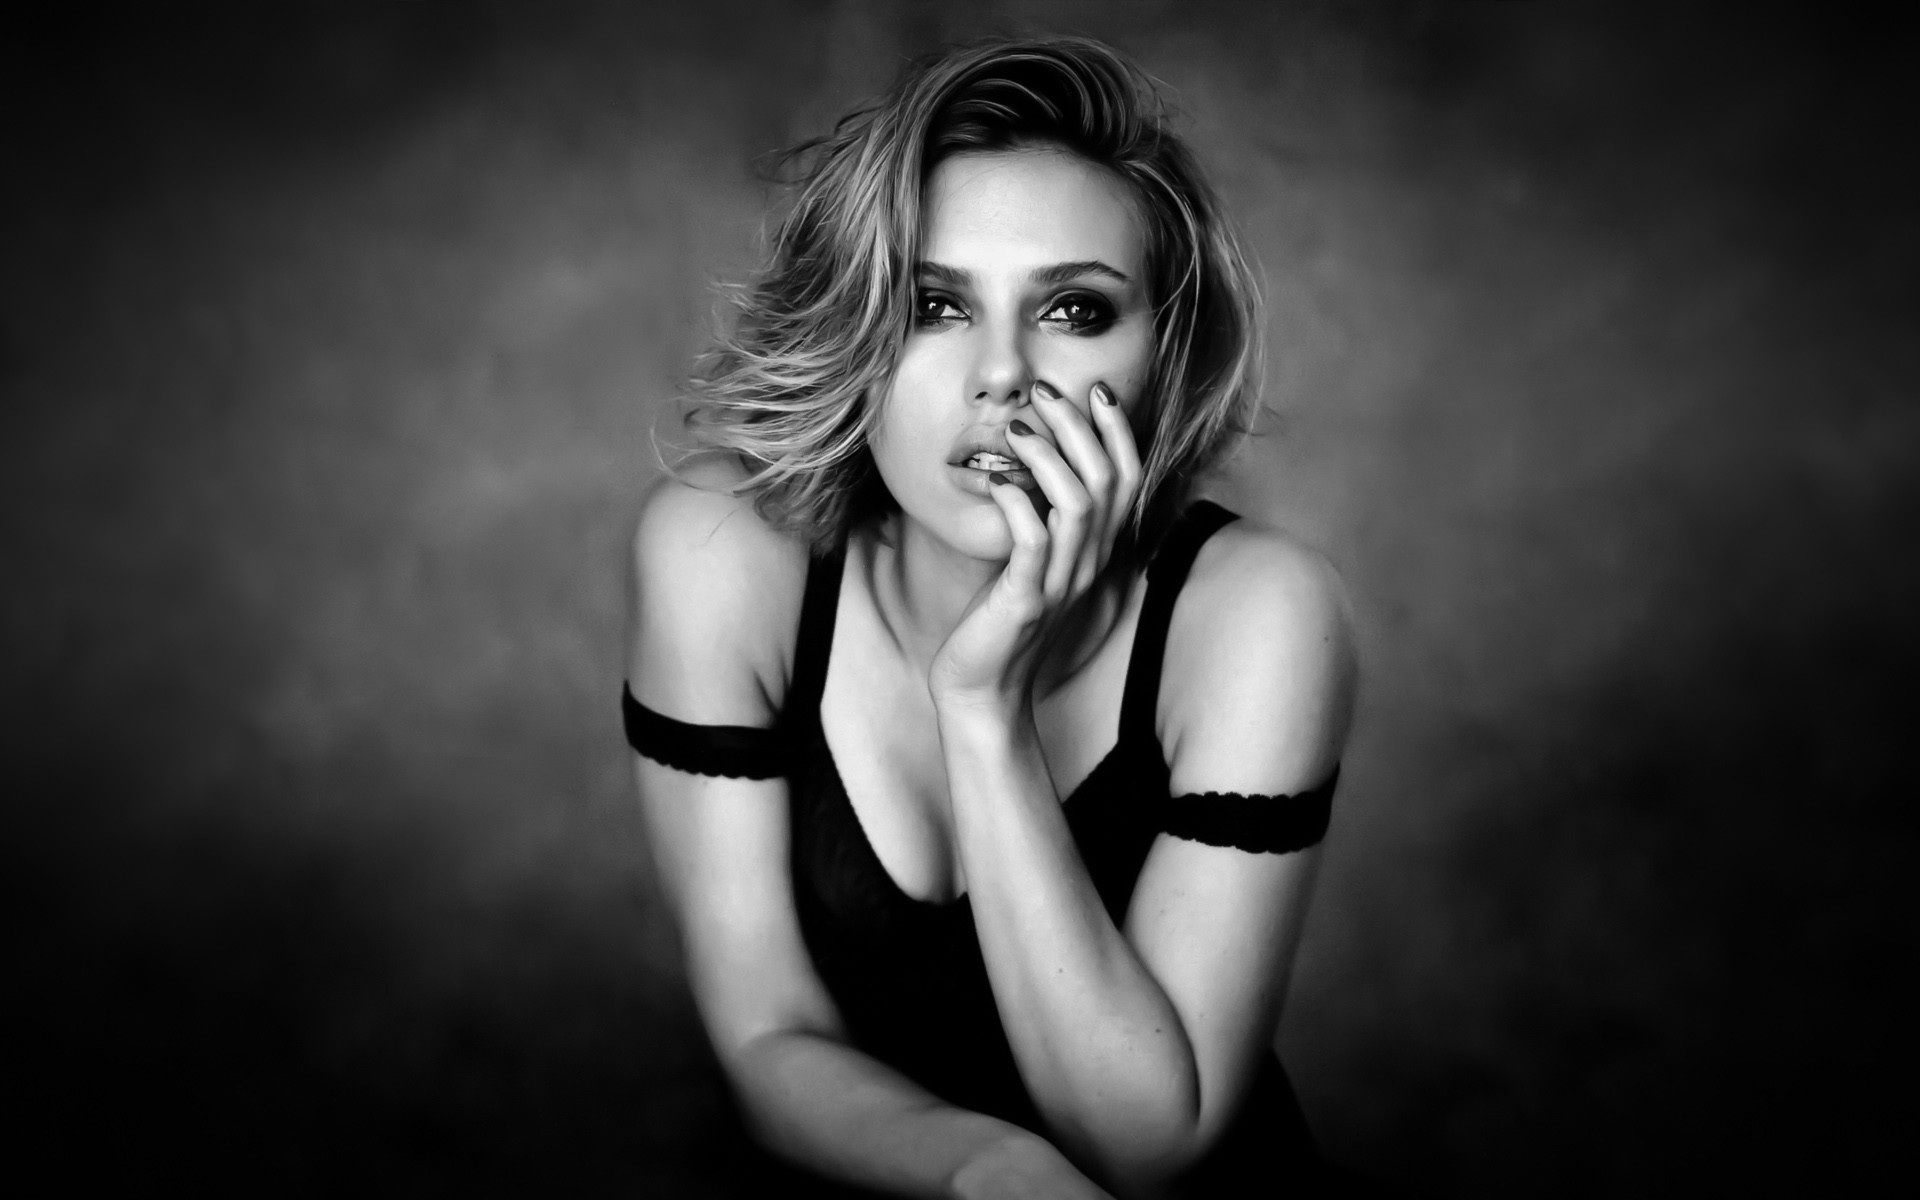 scarlett johansson 59 wallpapers | hd wallpapers | id #11393